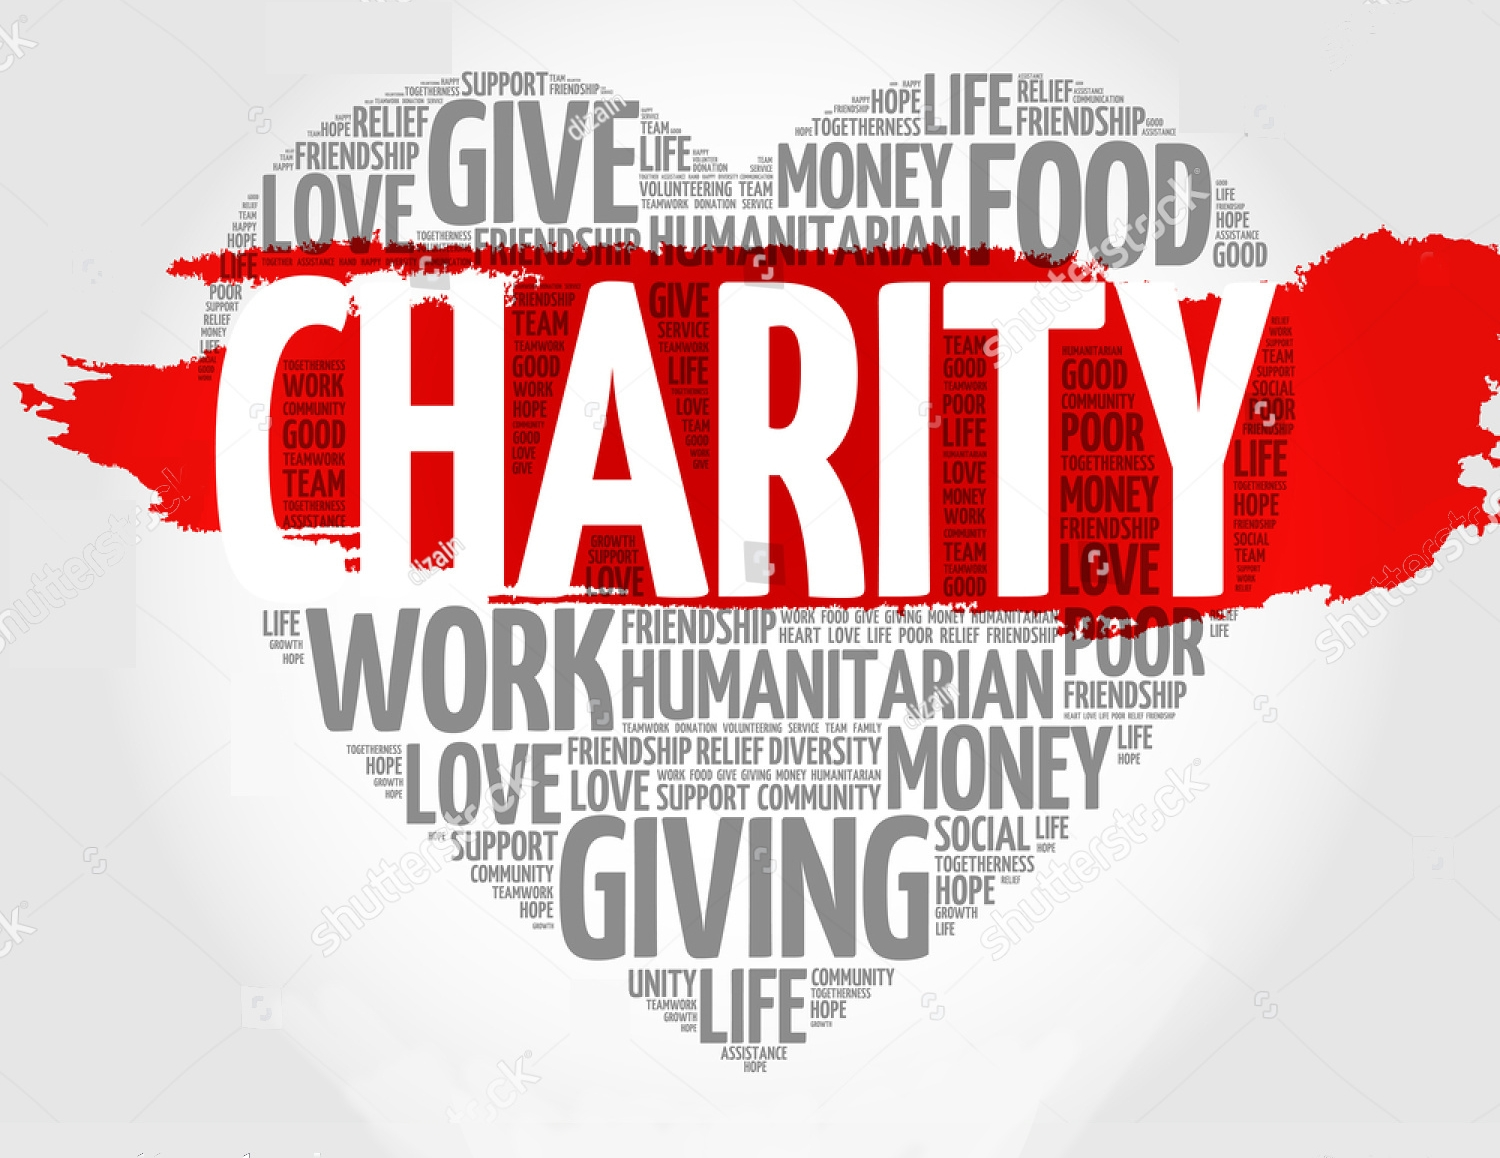 CHARITY - All net proceeds go to charity. Every month's event sponsors a responsible, well researched group or organization making a positive difference in the world.